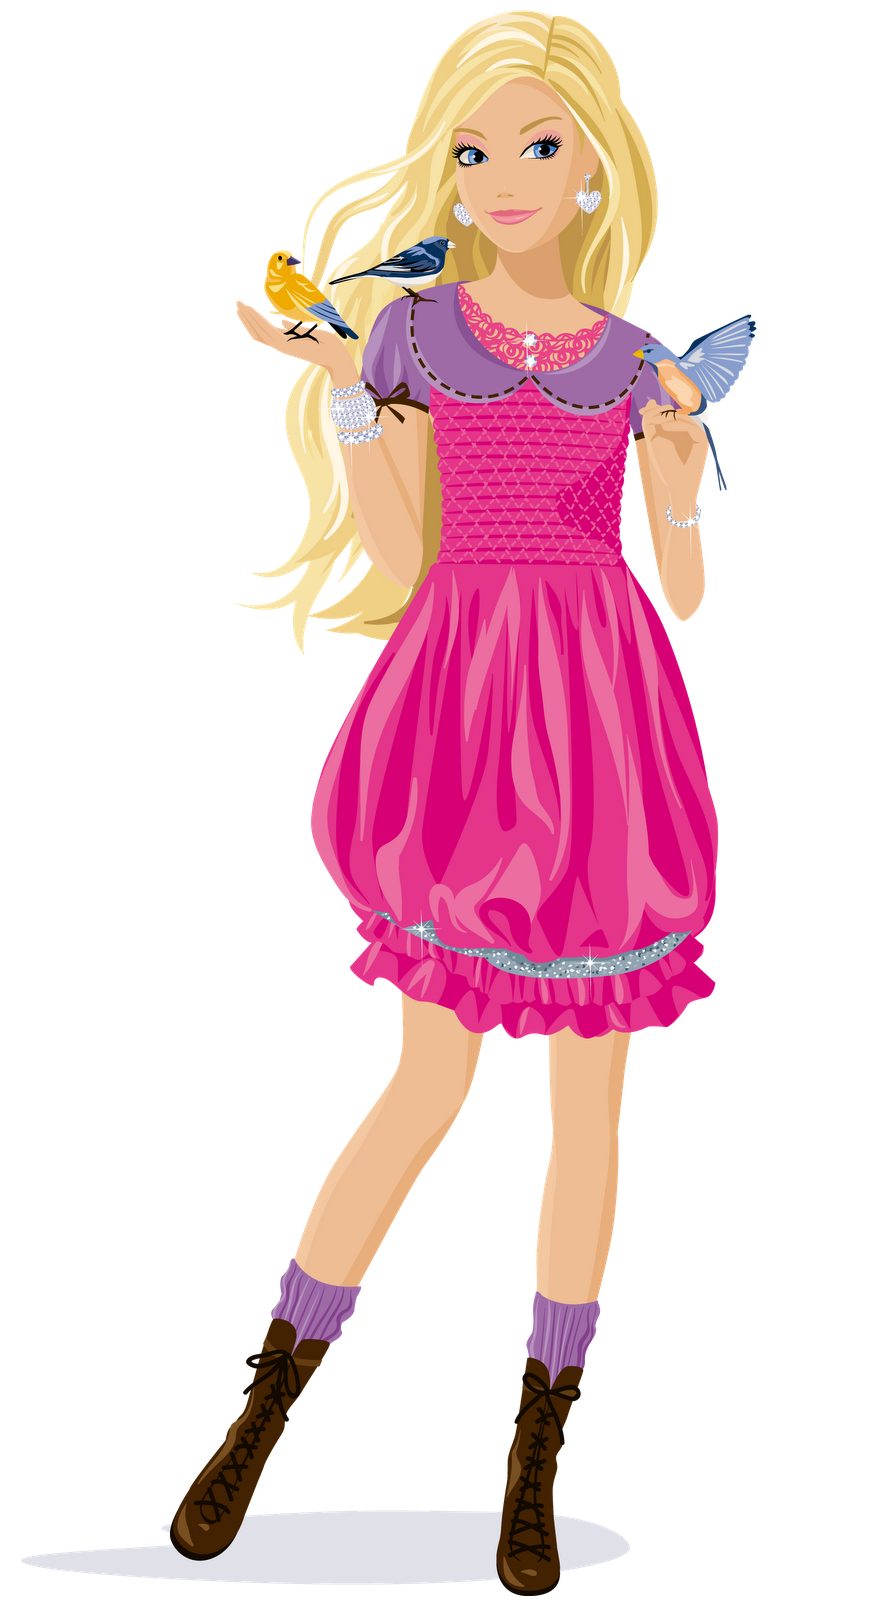 La Tele Que No Educa Barbie Life In The Dreamhouse together with Barbie Dolls Dresses together with 3 Dimensional House Plans together with Barbie Imagens blogspot in addition Barbie As Princess Coloring Sheets. on dreamhouse clip art